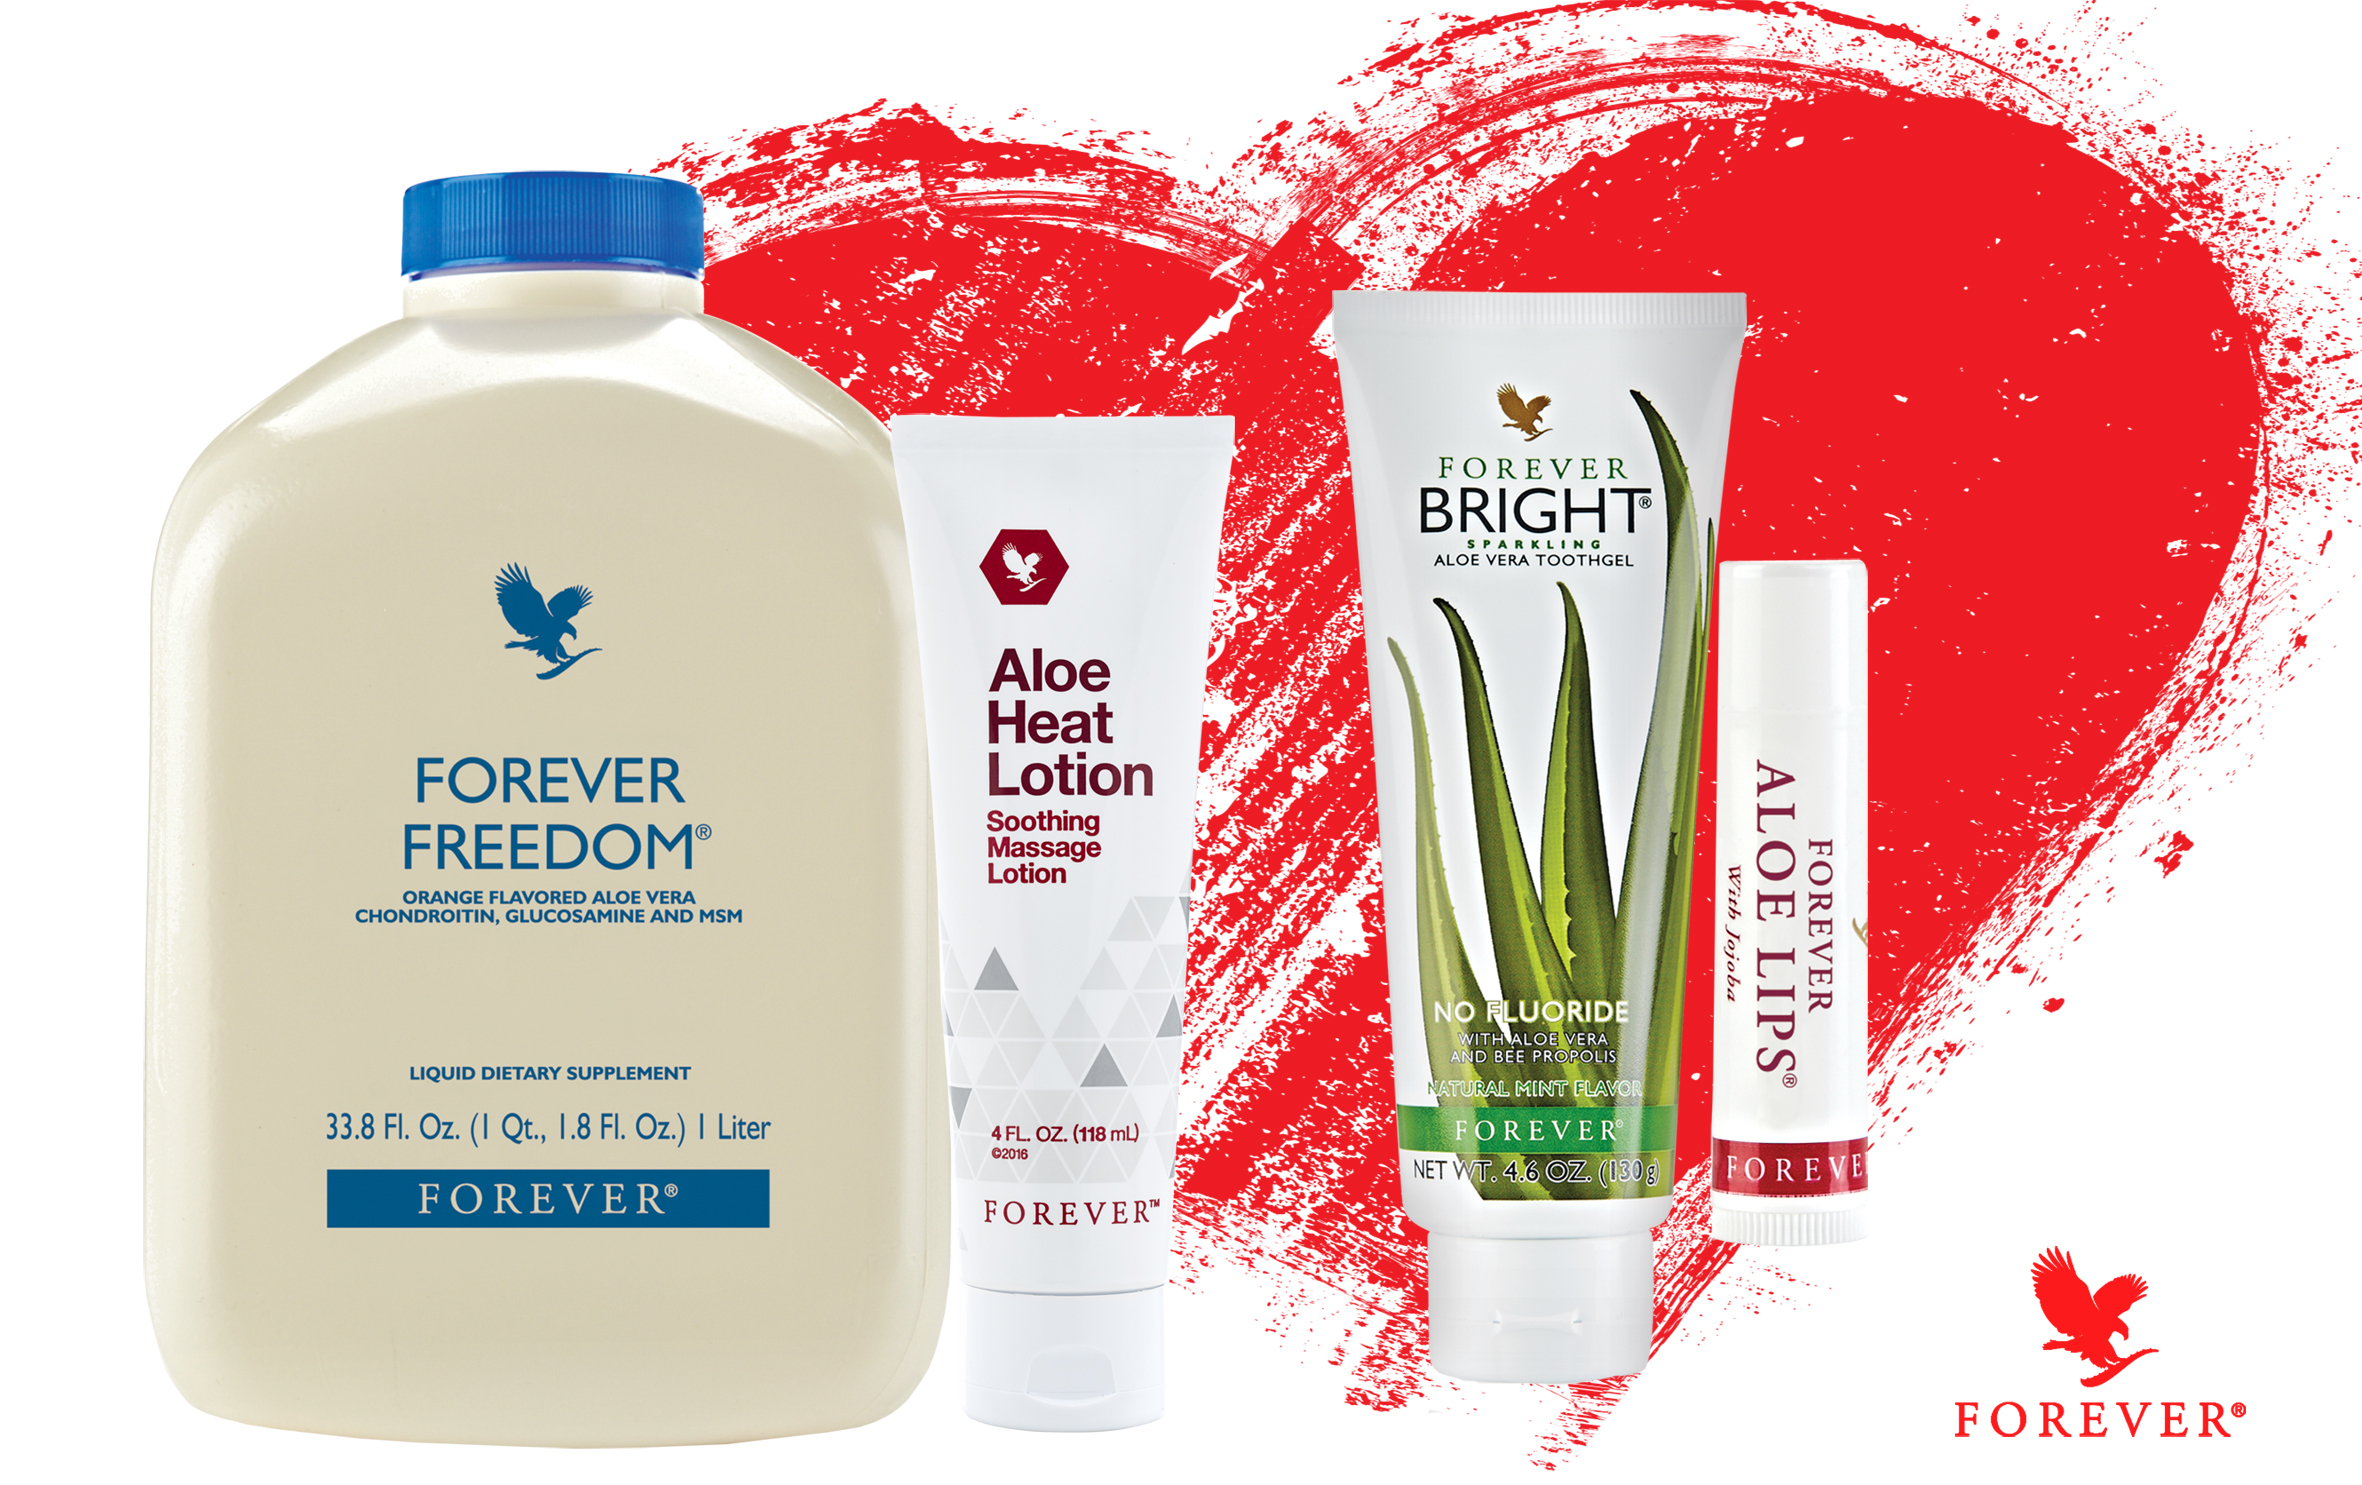 produse forever living products romania